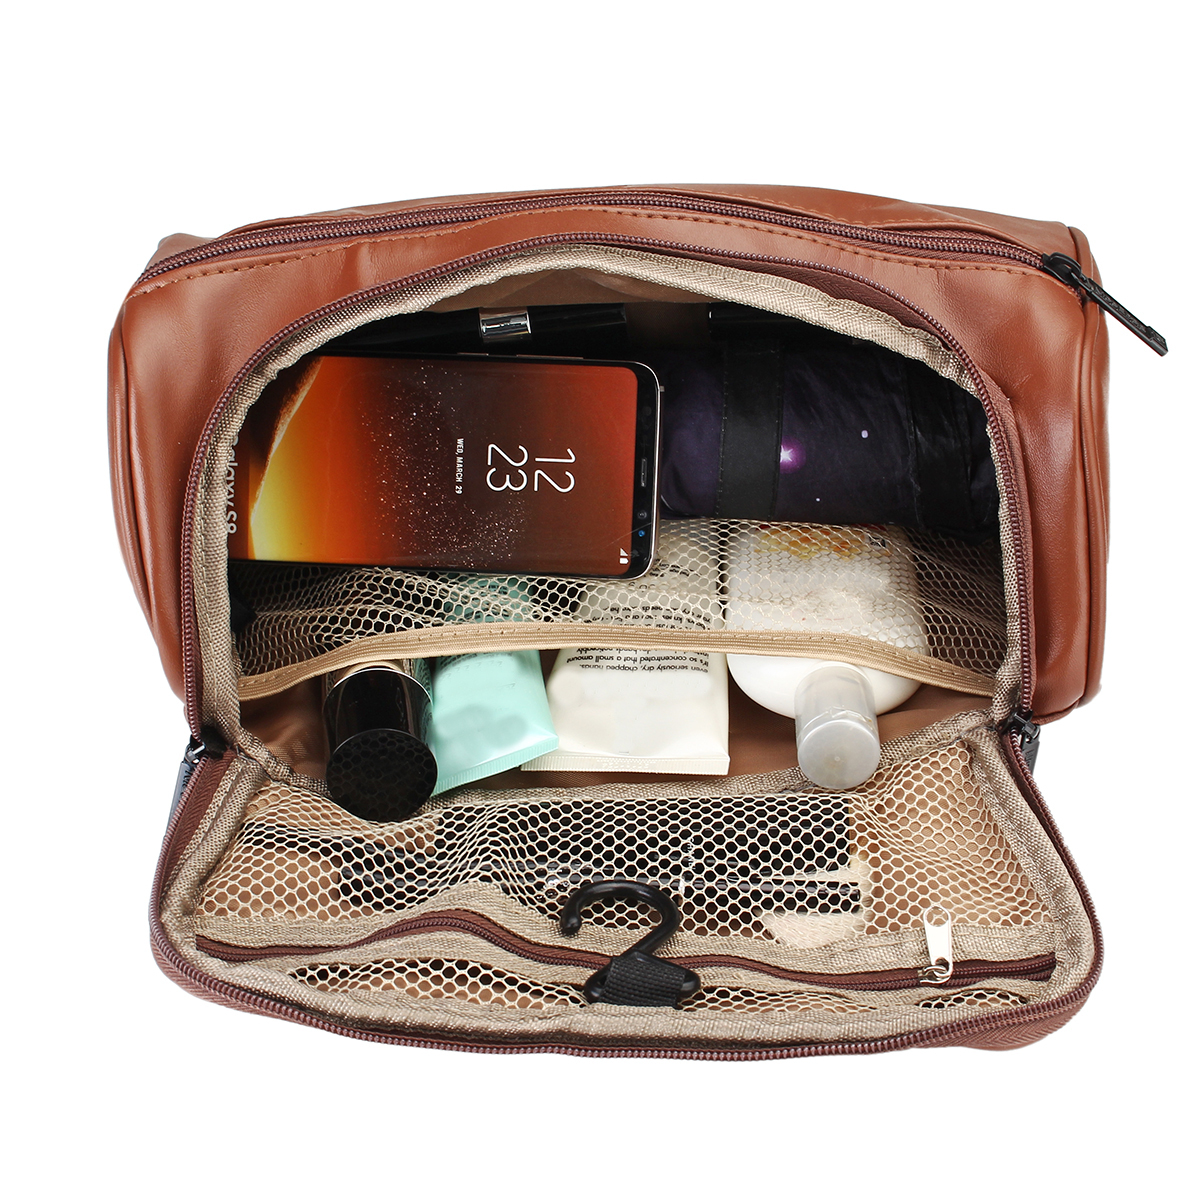 30da44031847 ... Large Shaving Brush Cosmetic Travel Kits Organizer Case ·  a79741a5-eda3-480f-97d6-a66242a5443f.jpg ·  6fc15863-c54a-4303-85c3-8de43d2cb466.jpeg ...